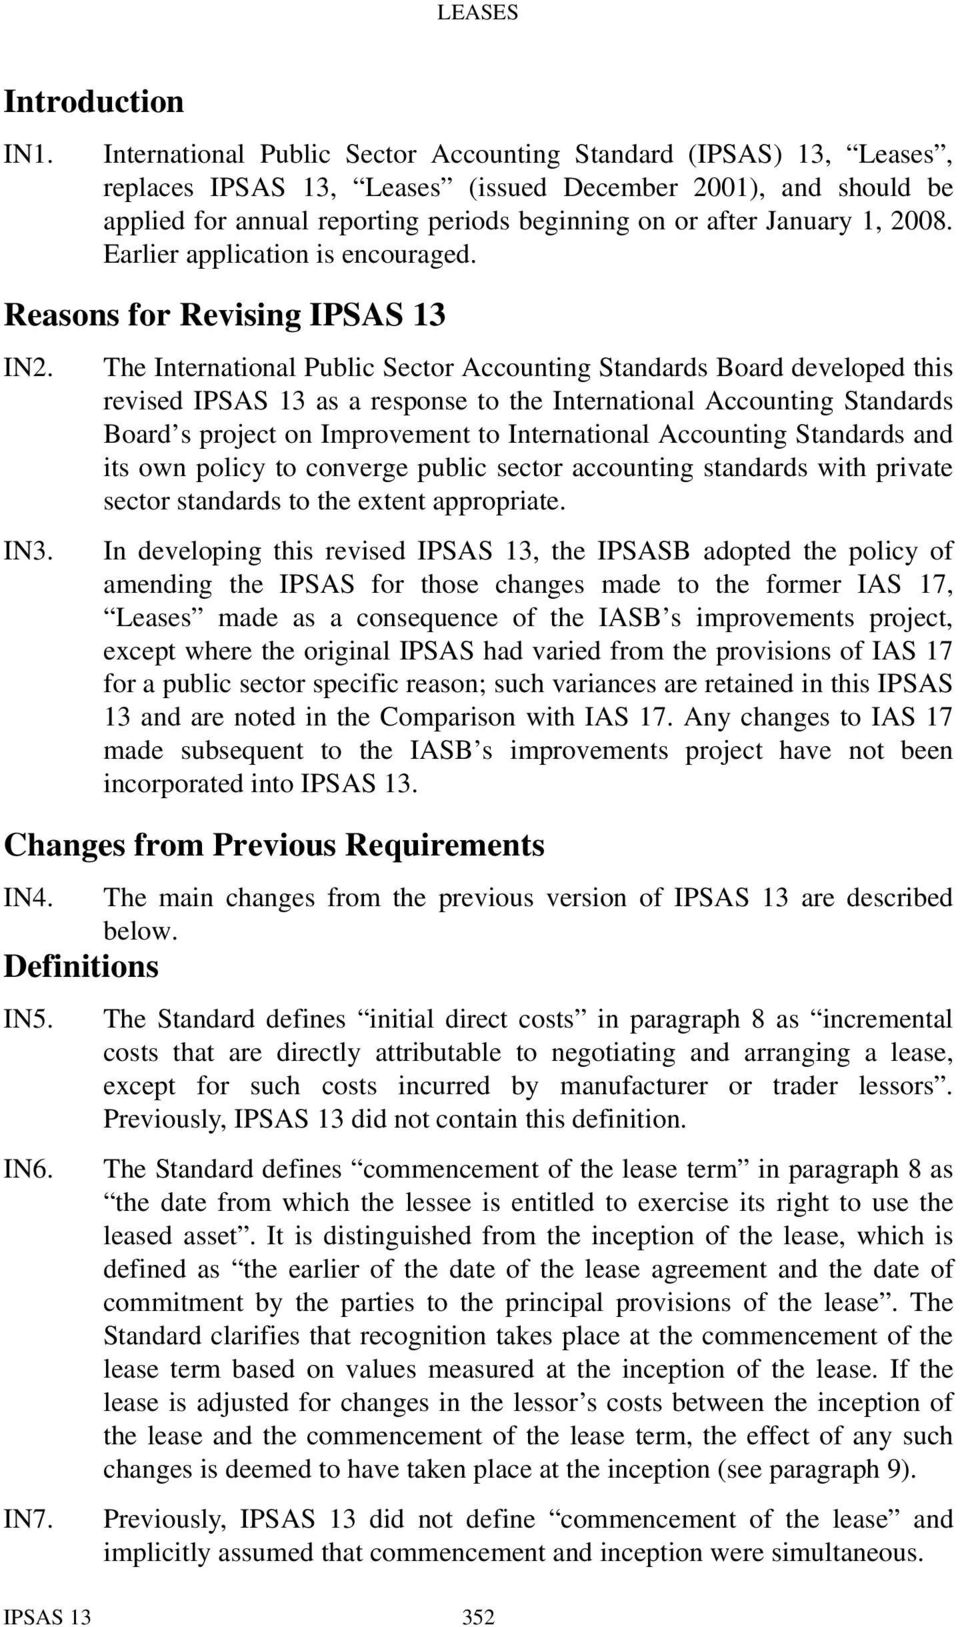 1, 2008. Earlier application is encouraged. Reasons for Revising IPSAS 13 IN2. IN3.